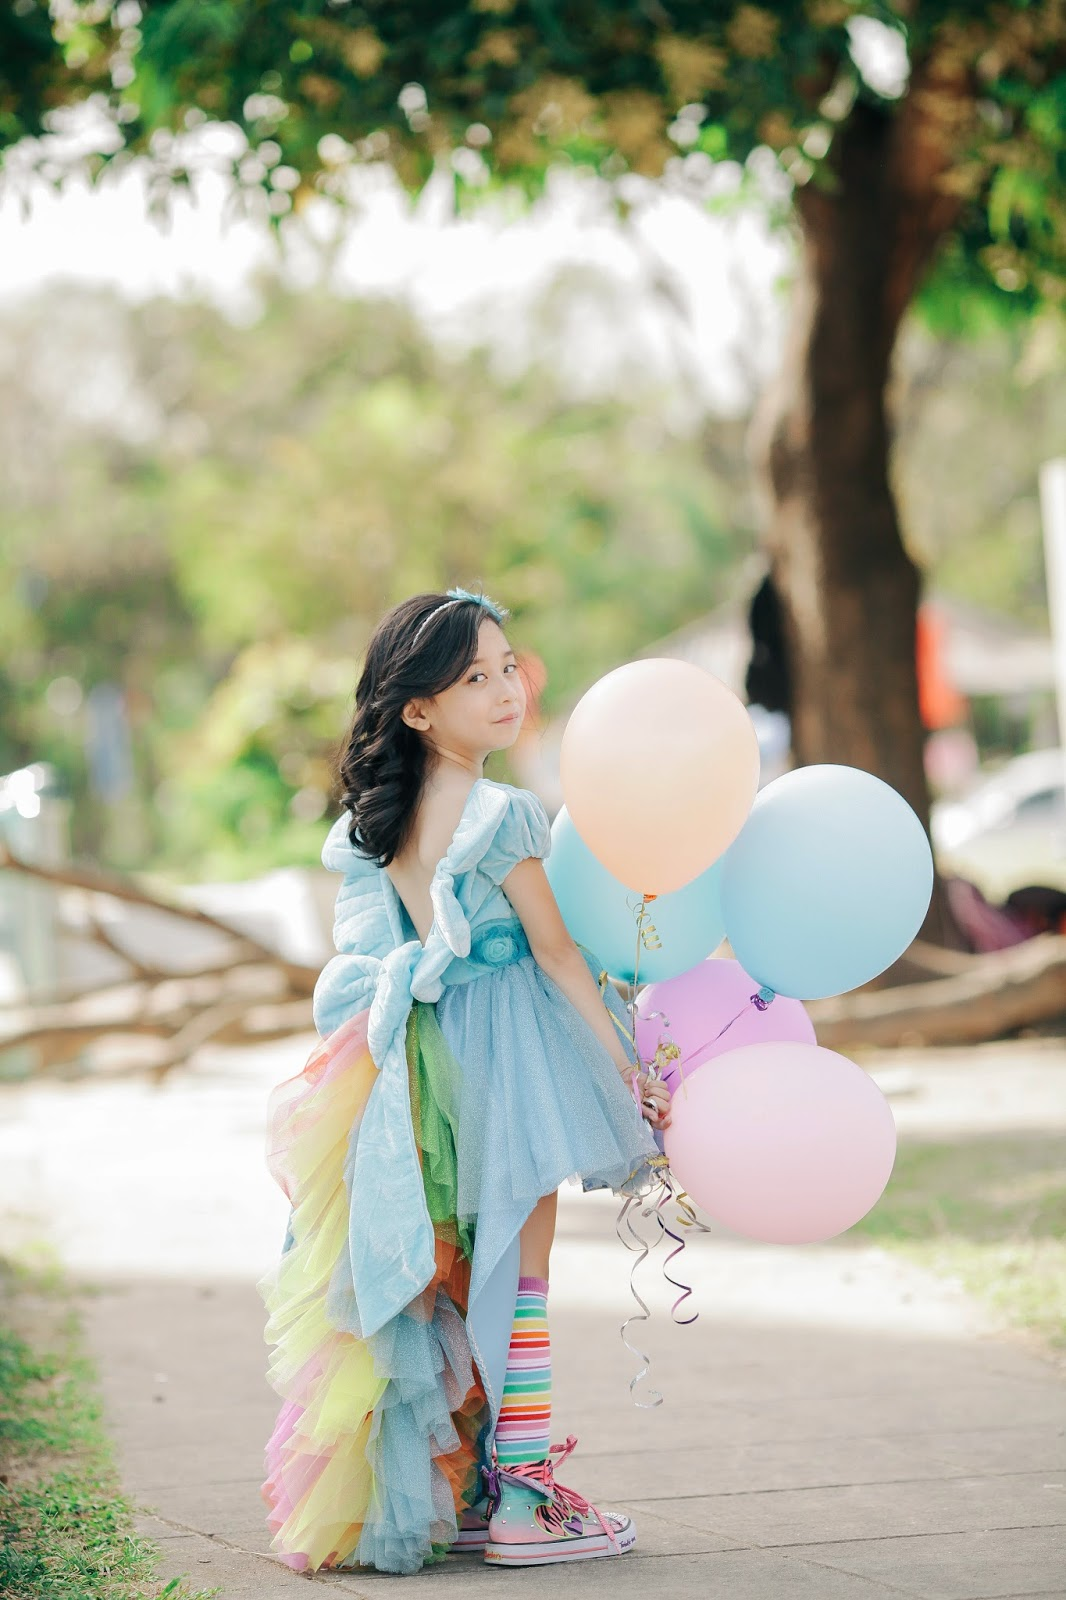 A Love Letter For My Daughter On Her 7th Birthday Rockstarmomma